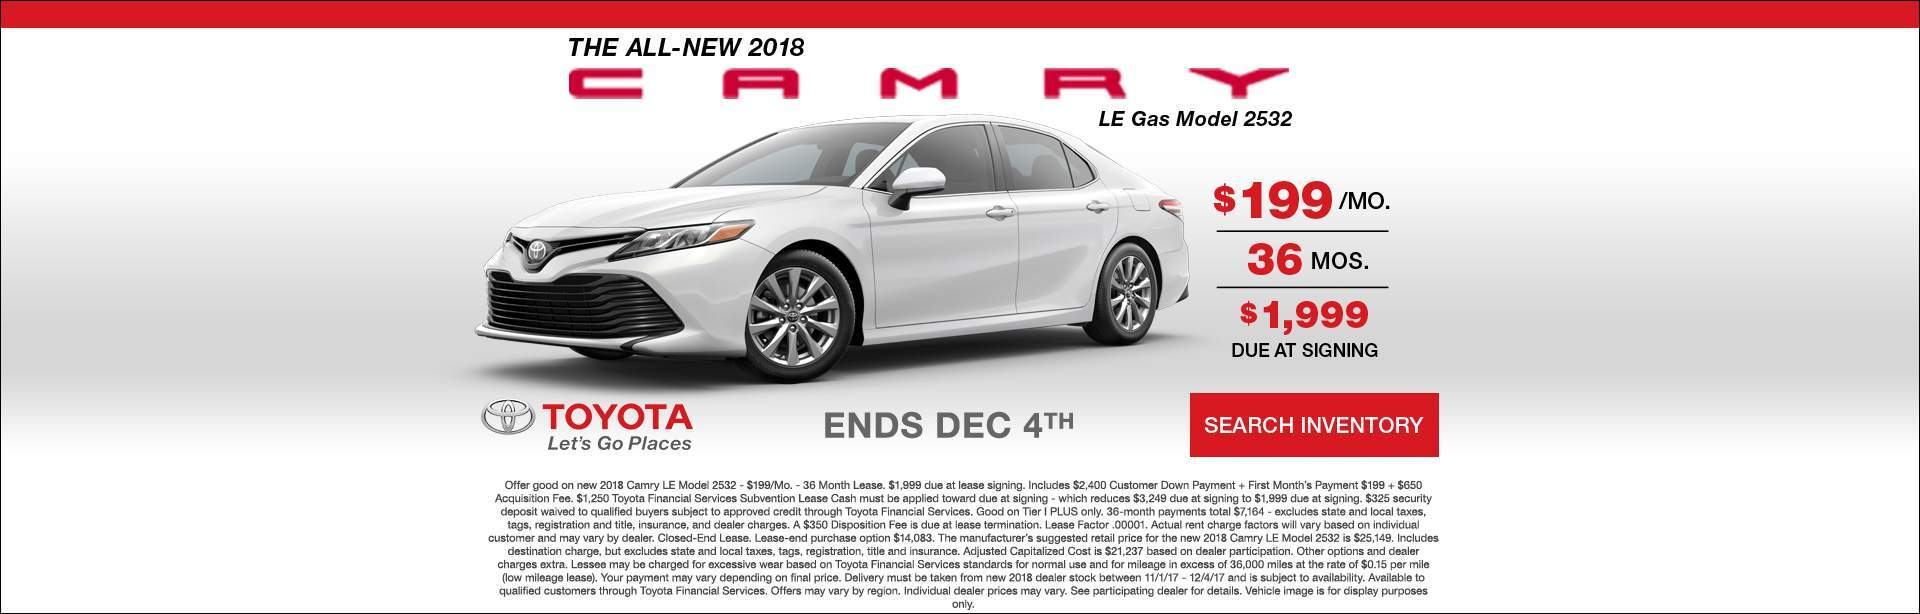 2018 Camry Let's Go Places